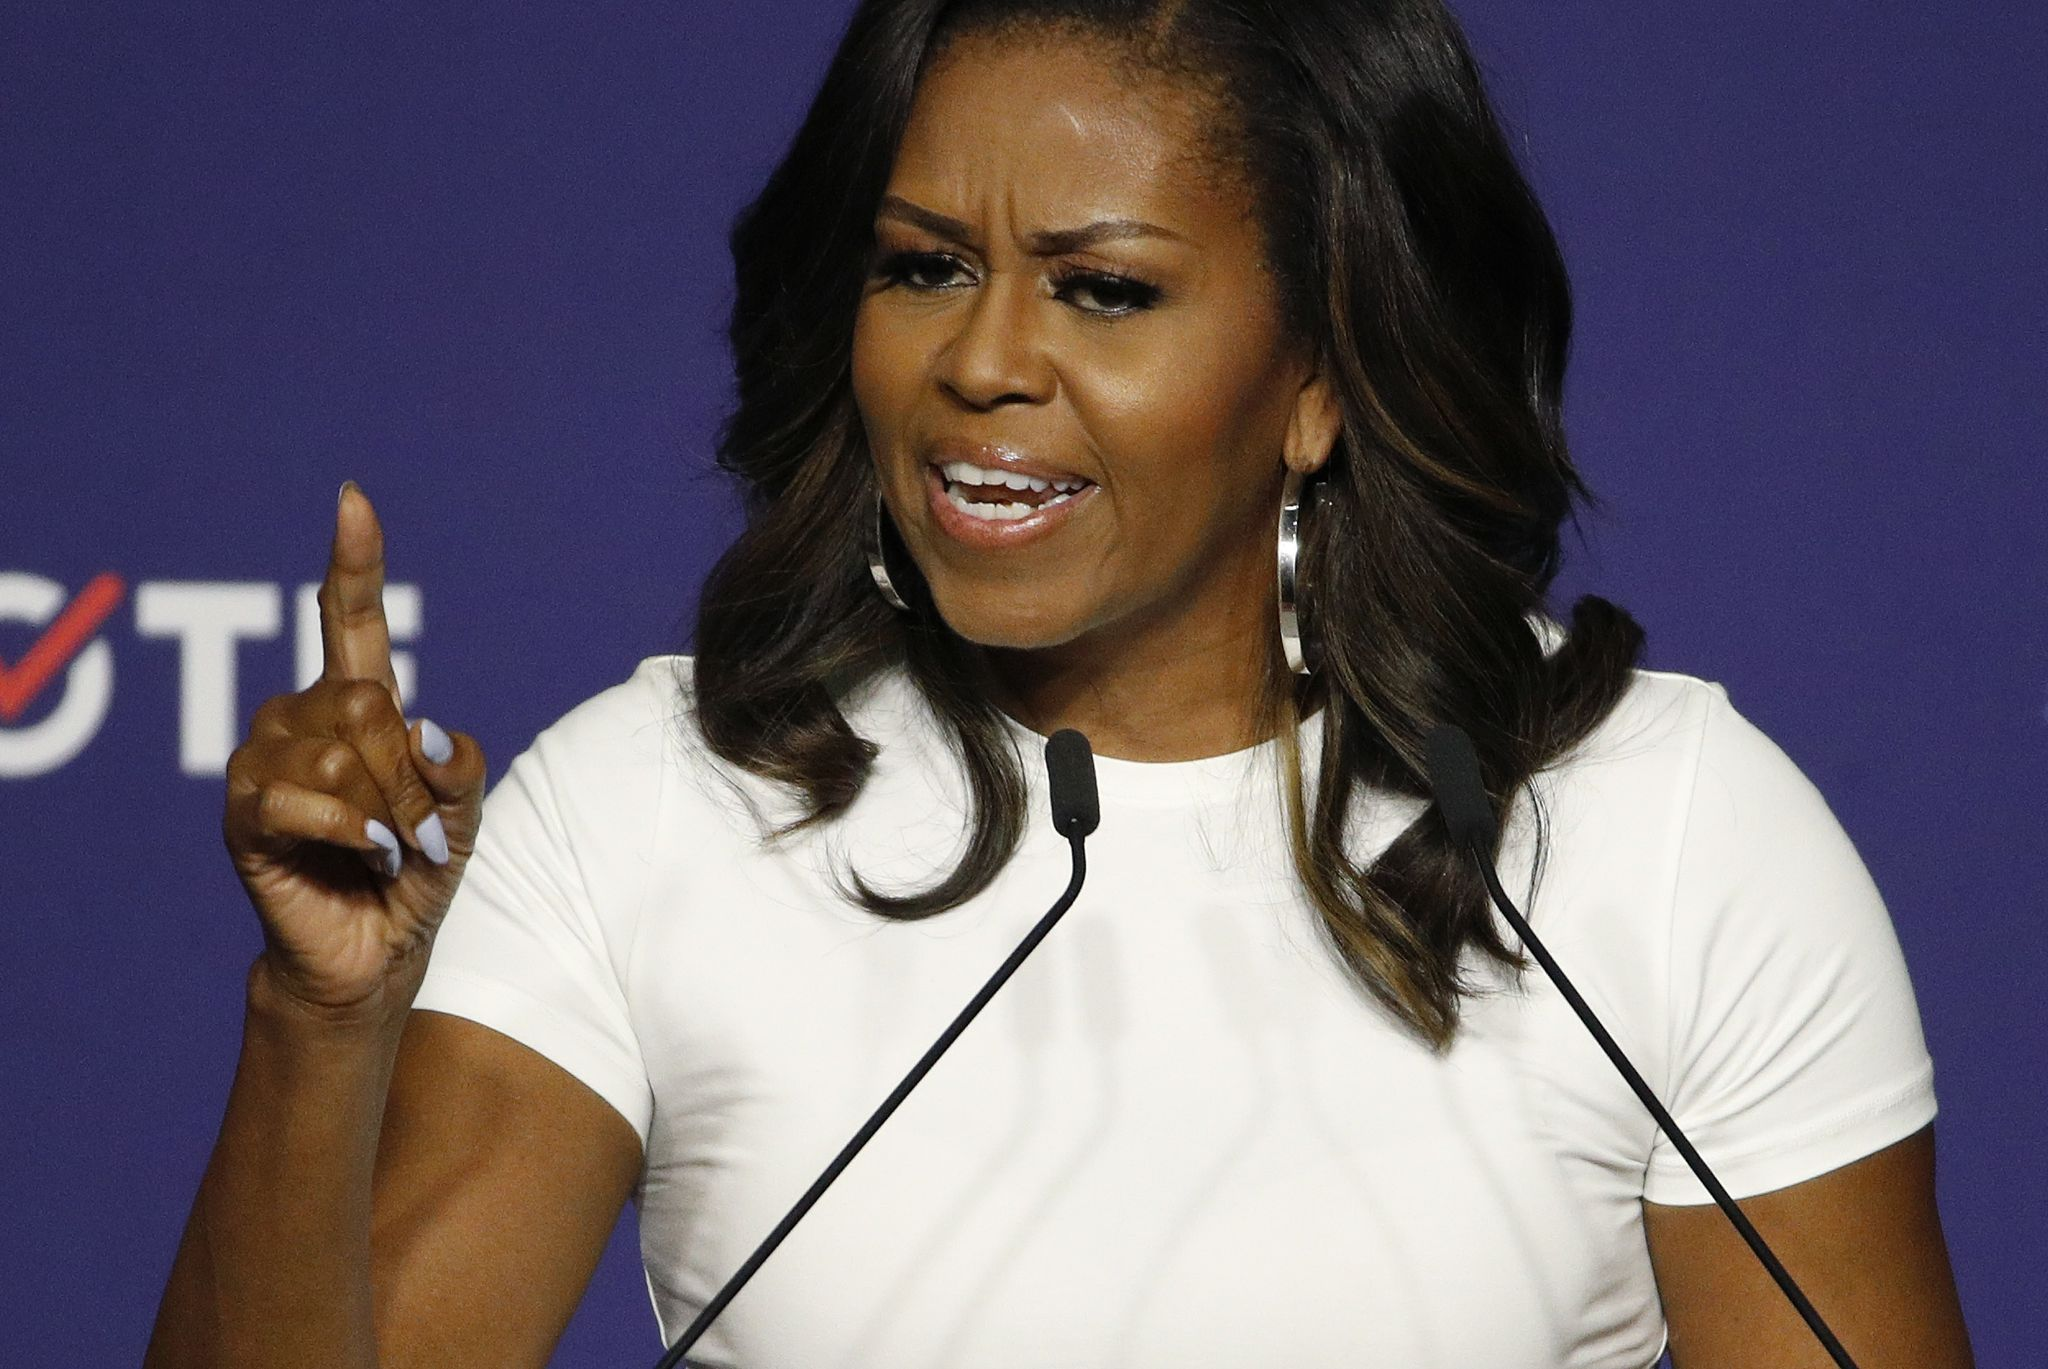 Michelle Obama rips Donald Trump in book 'Becoming'